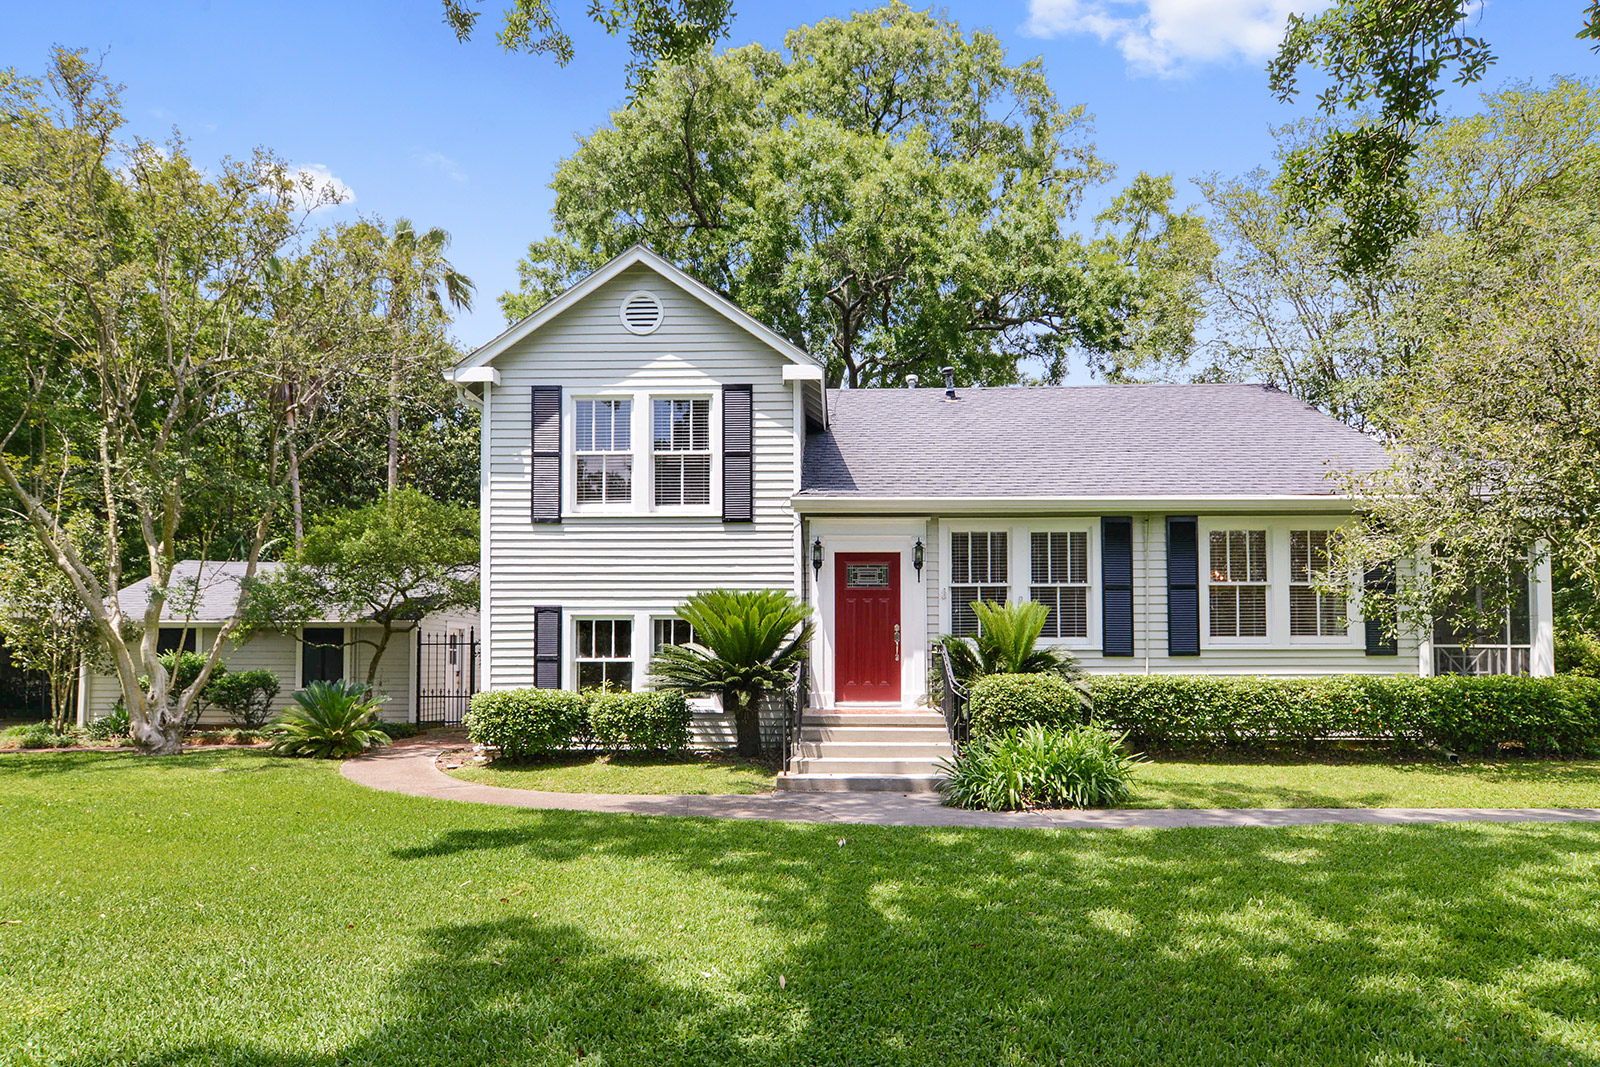 Gno appraisal services 504 736 5106 real estate appraiser for House appraisal